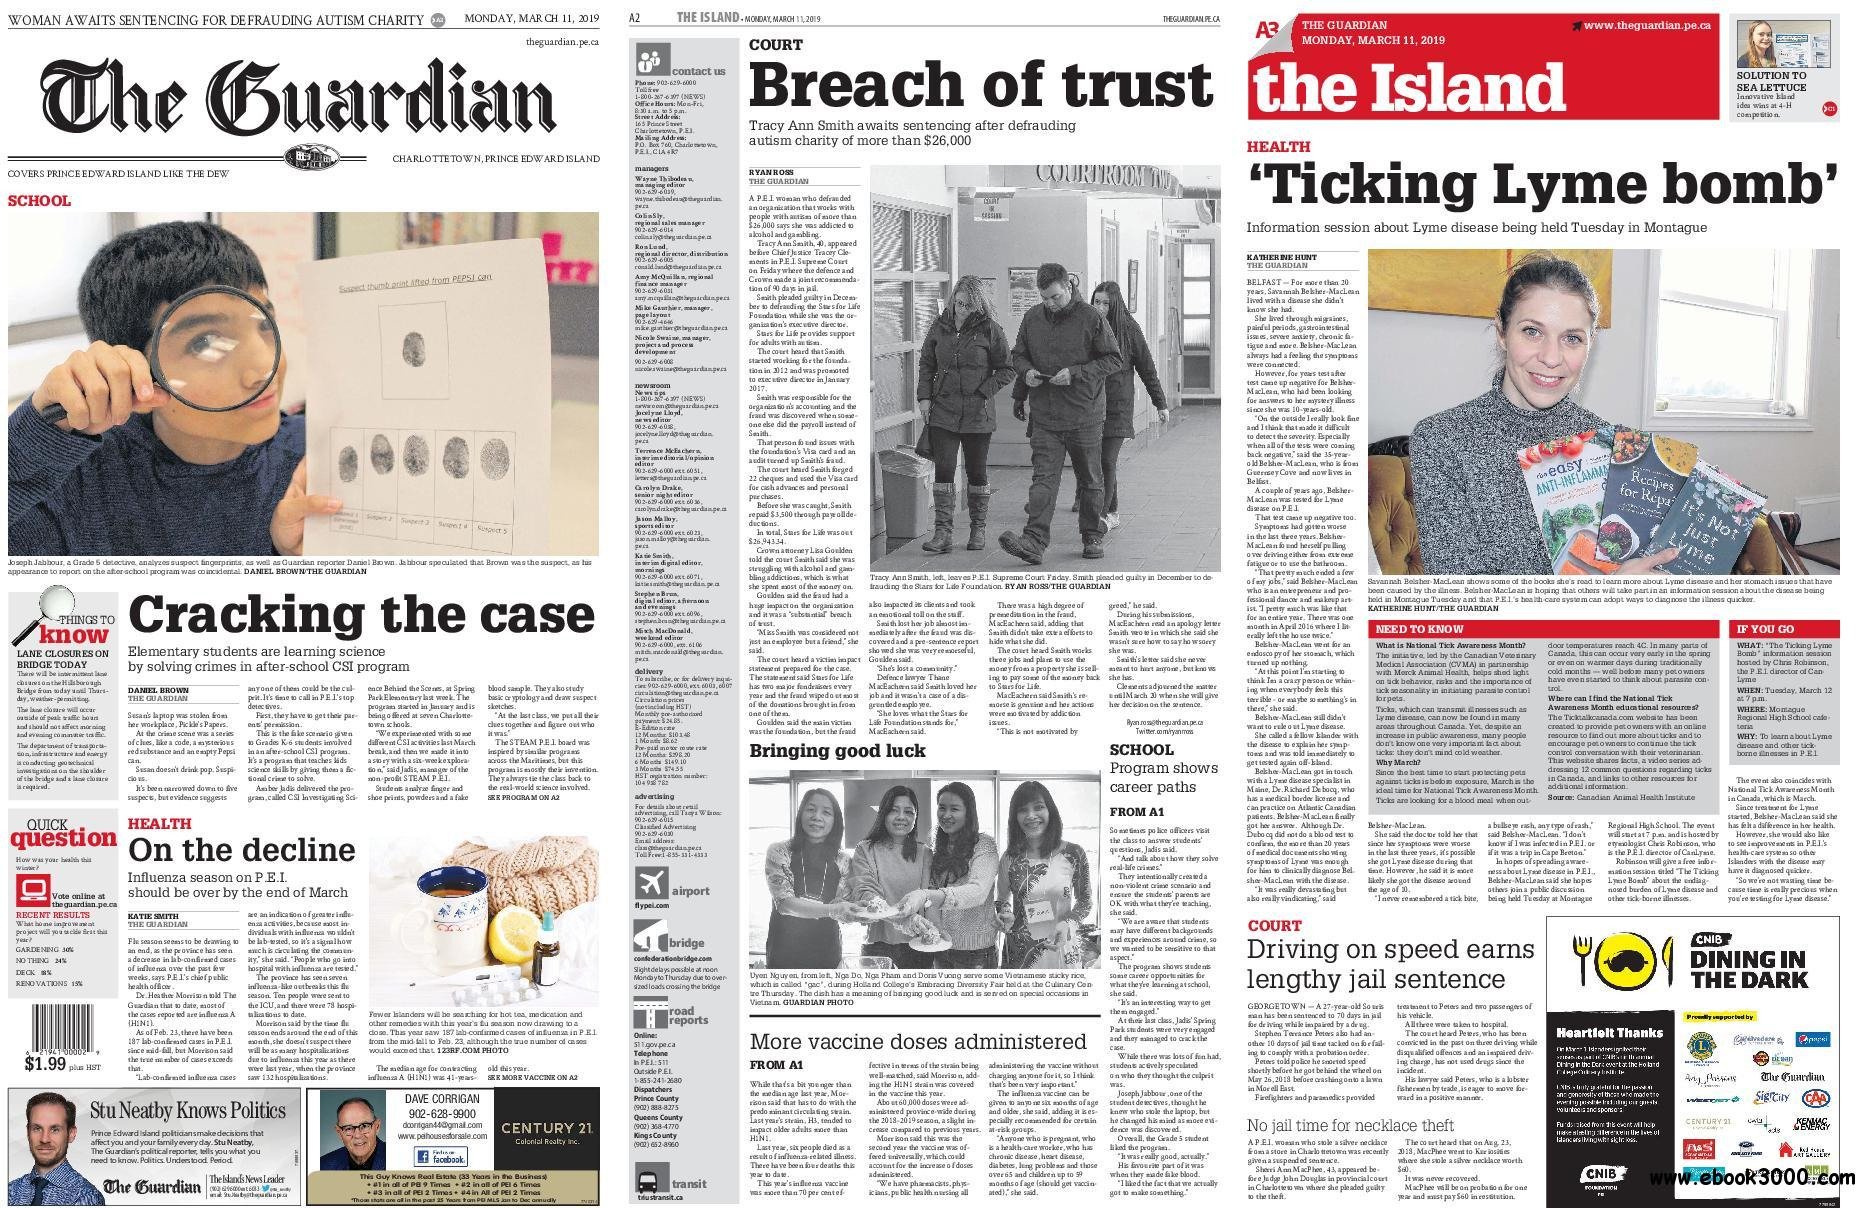 The Guardian (Charlottetown) - March 11, 2019